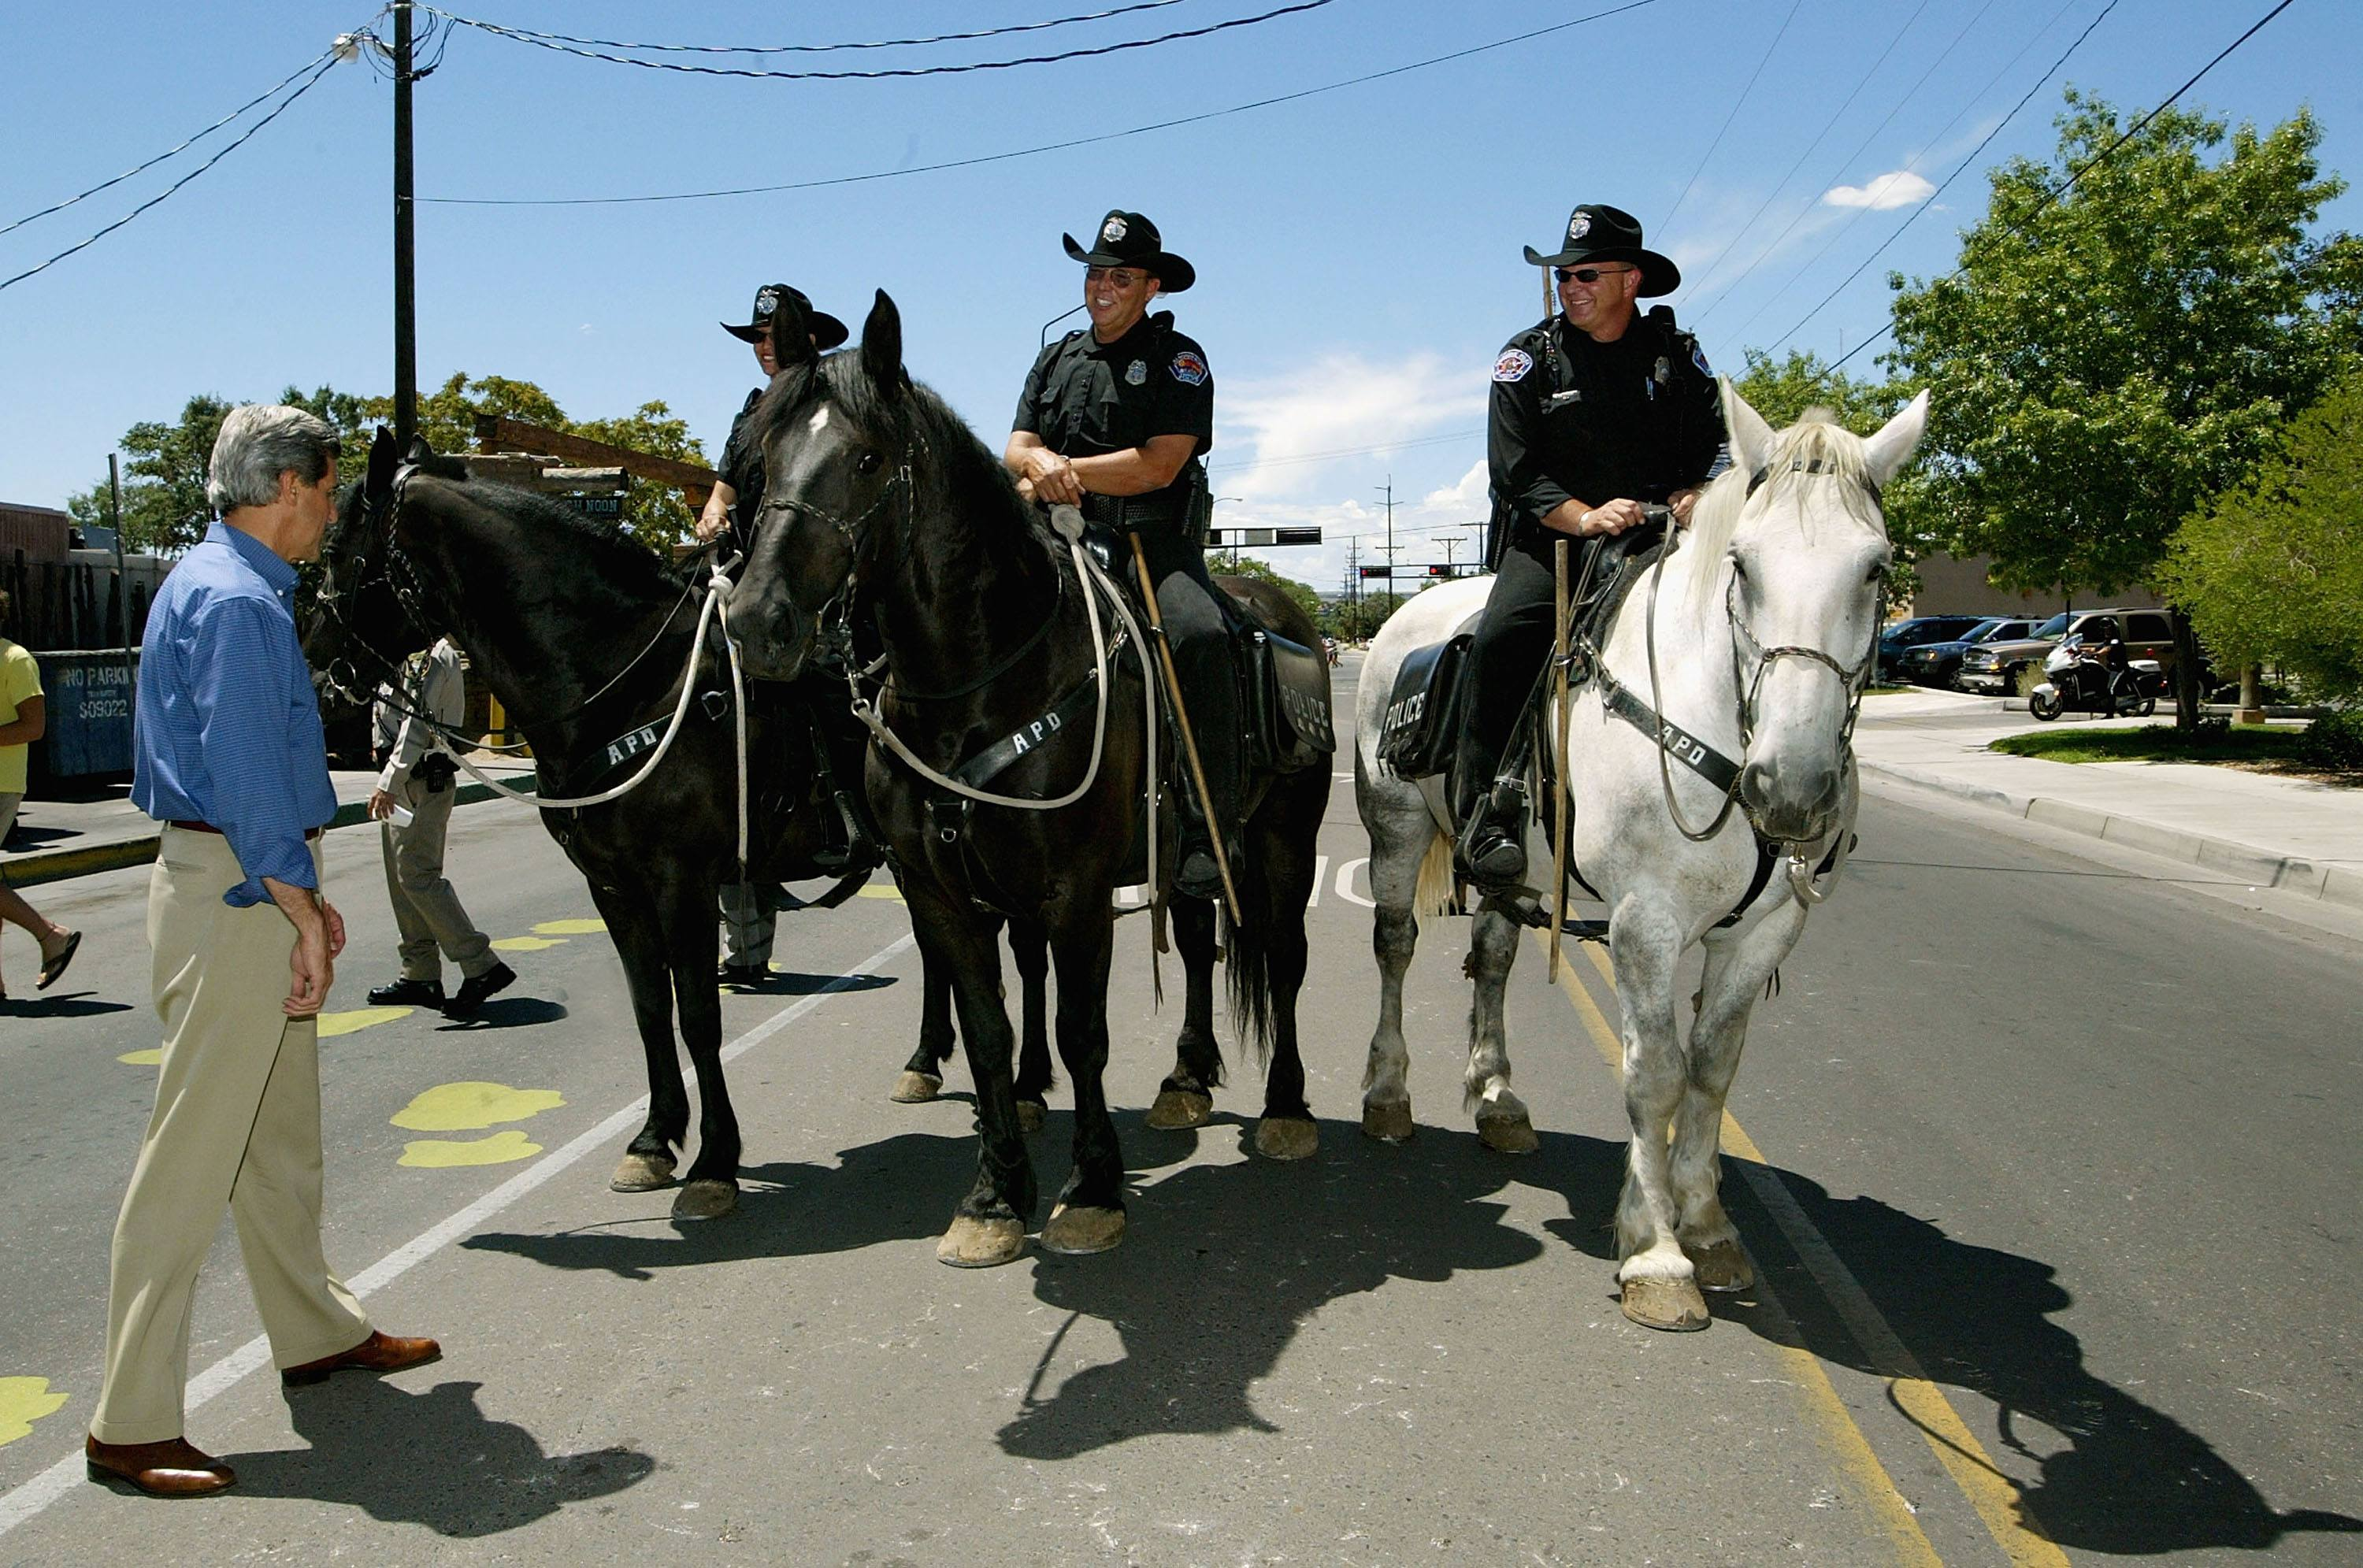 John Kerry greets a group of mounted Albuquerque police officers